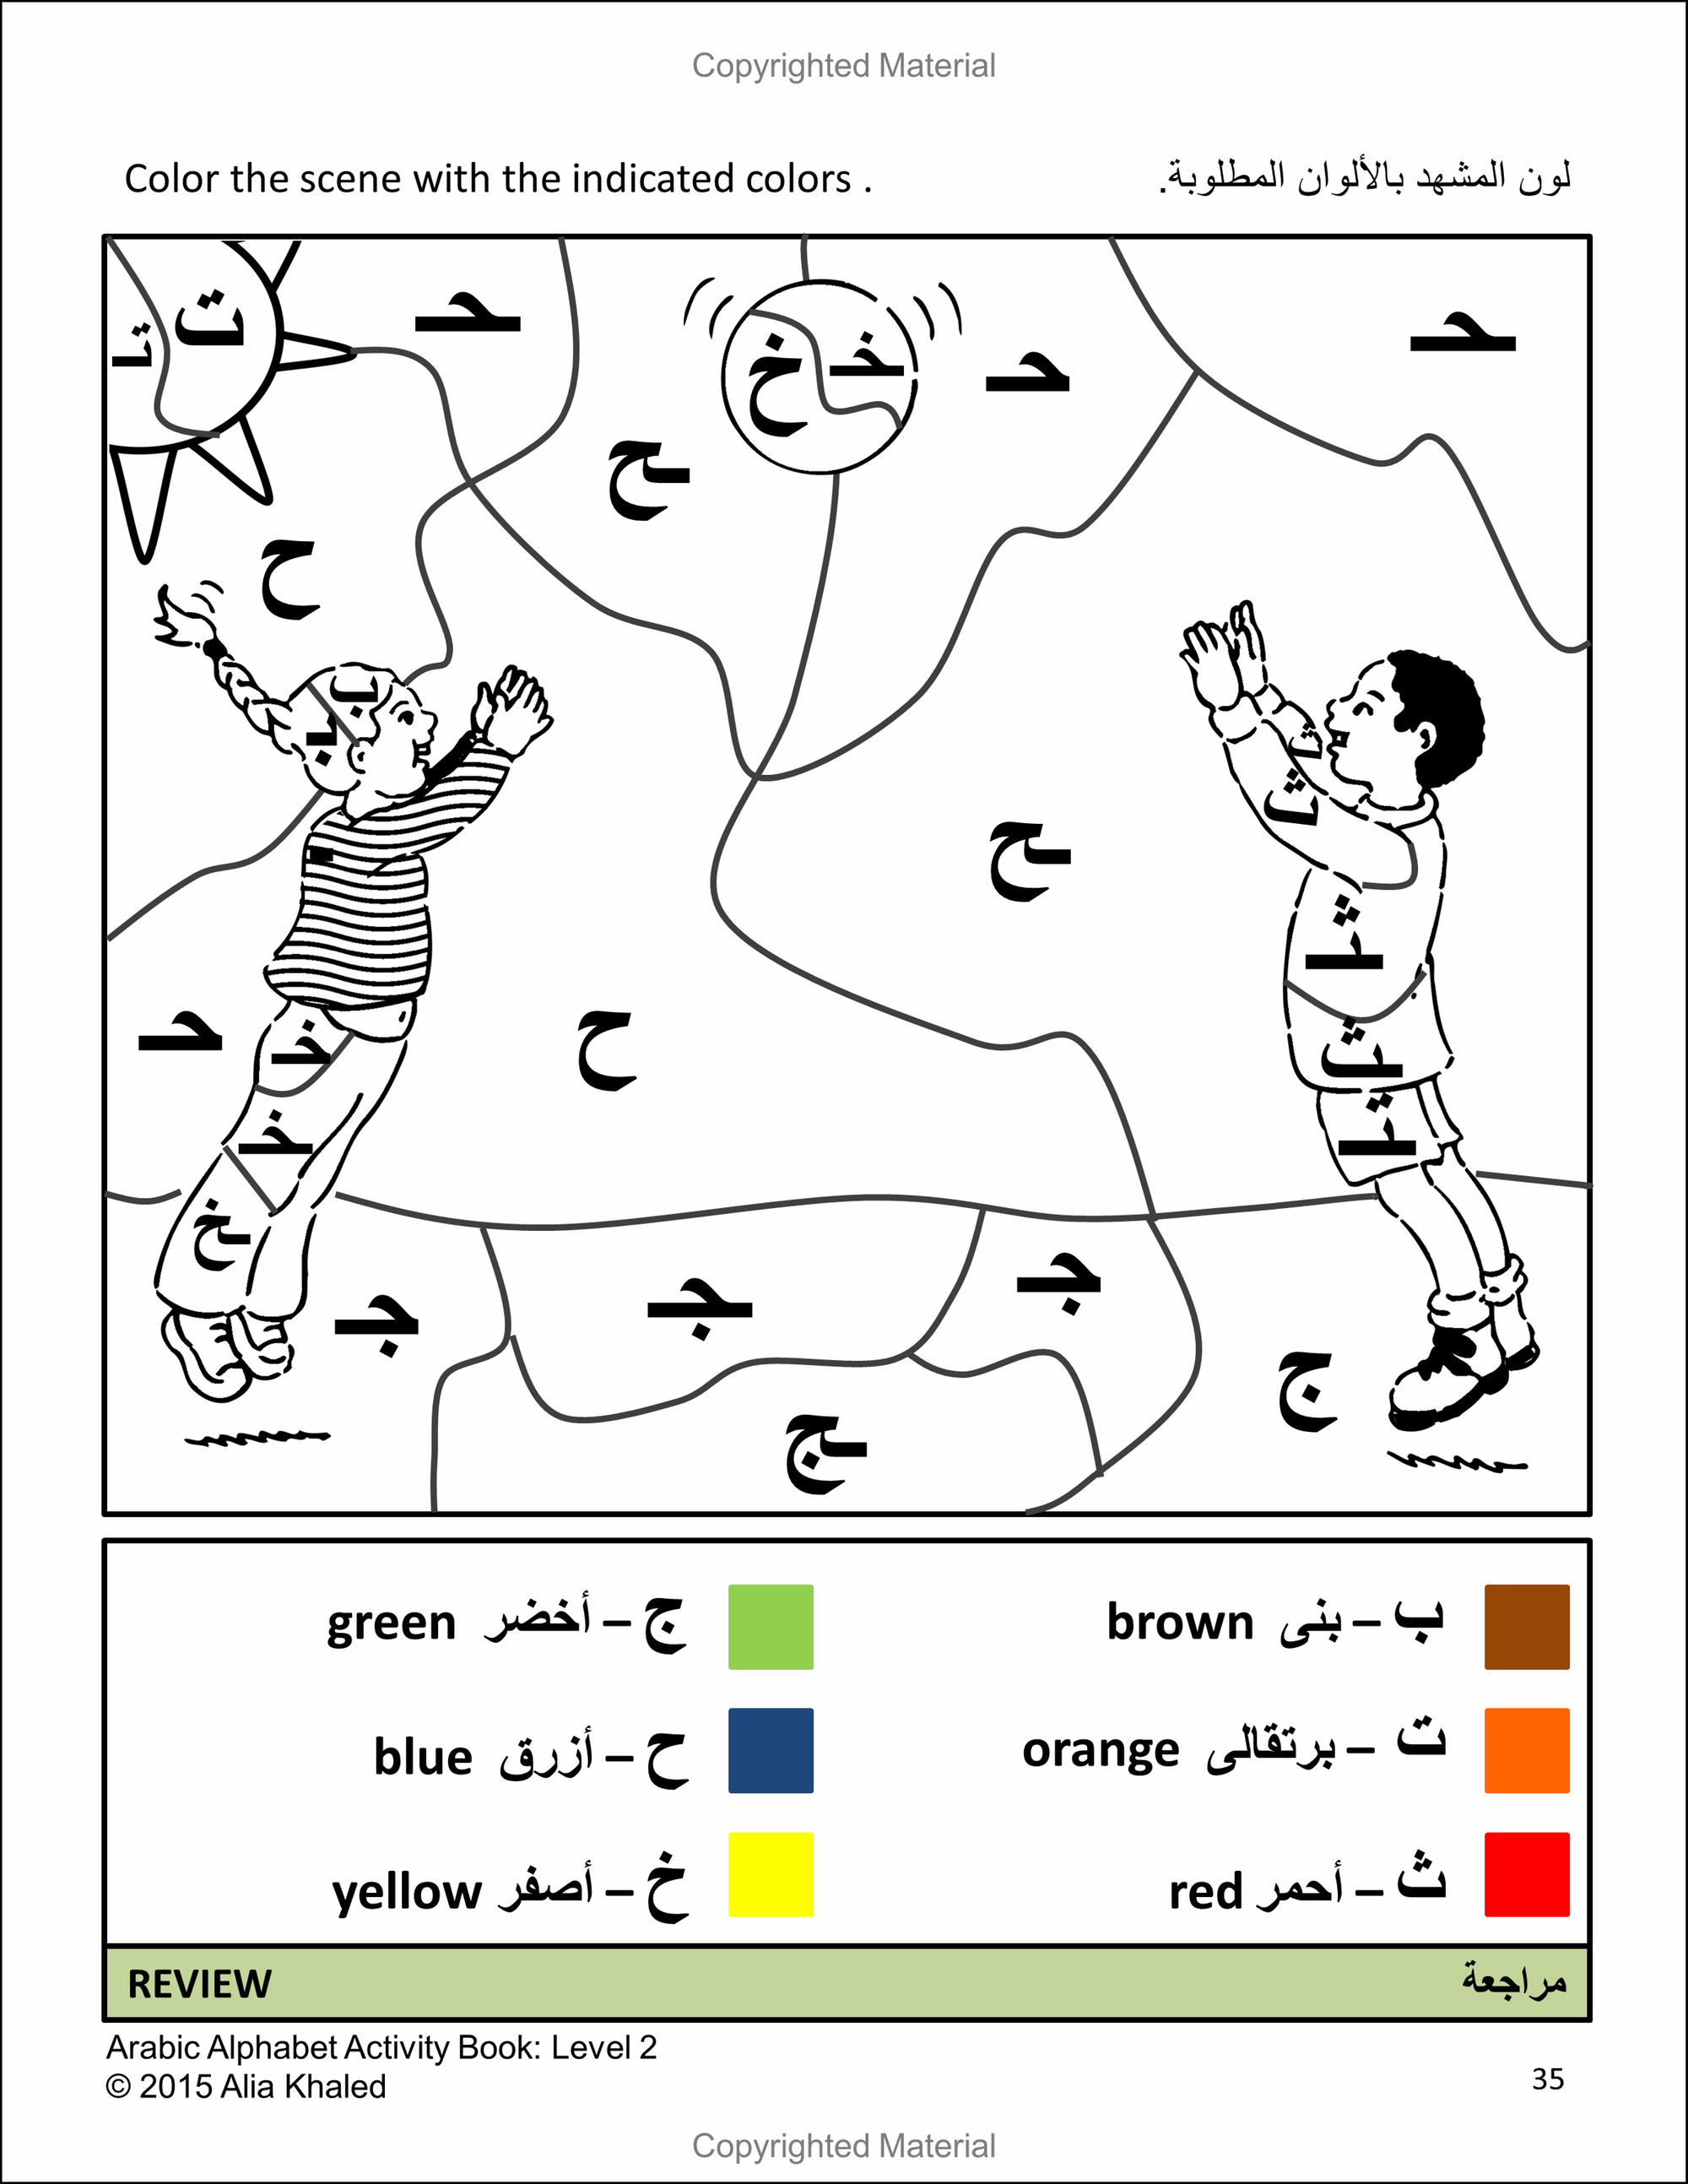 Arabic Alphabet Activity Book Level 2 Colored Edition By Alia Khaled